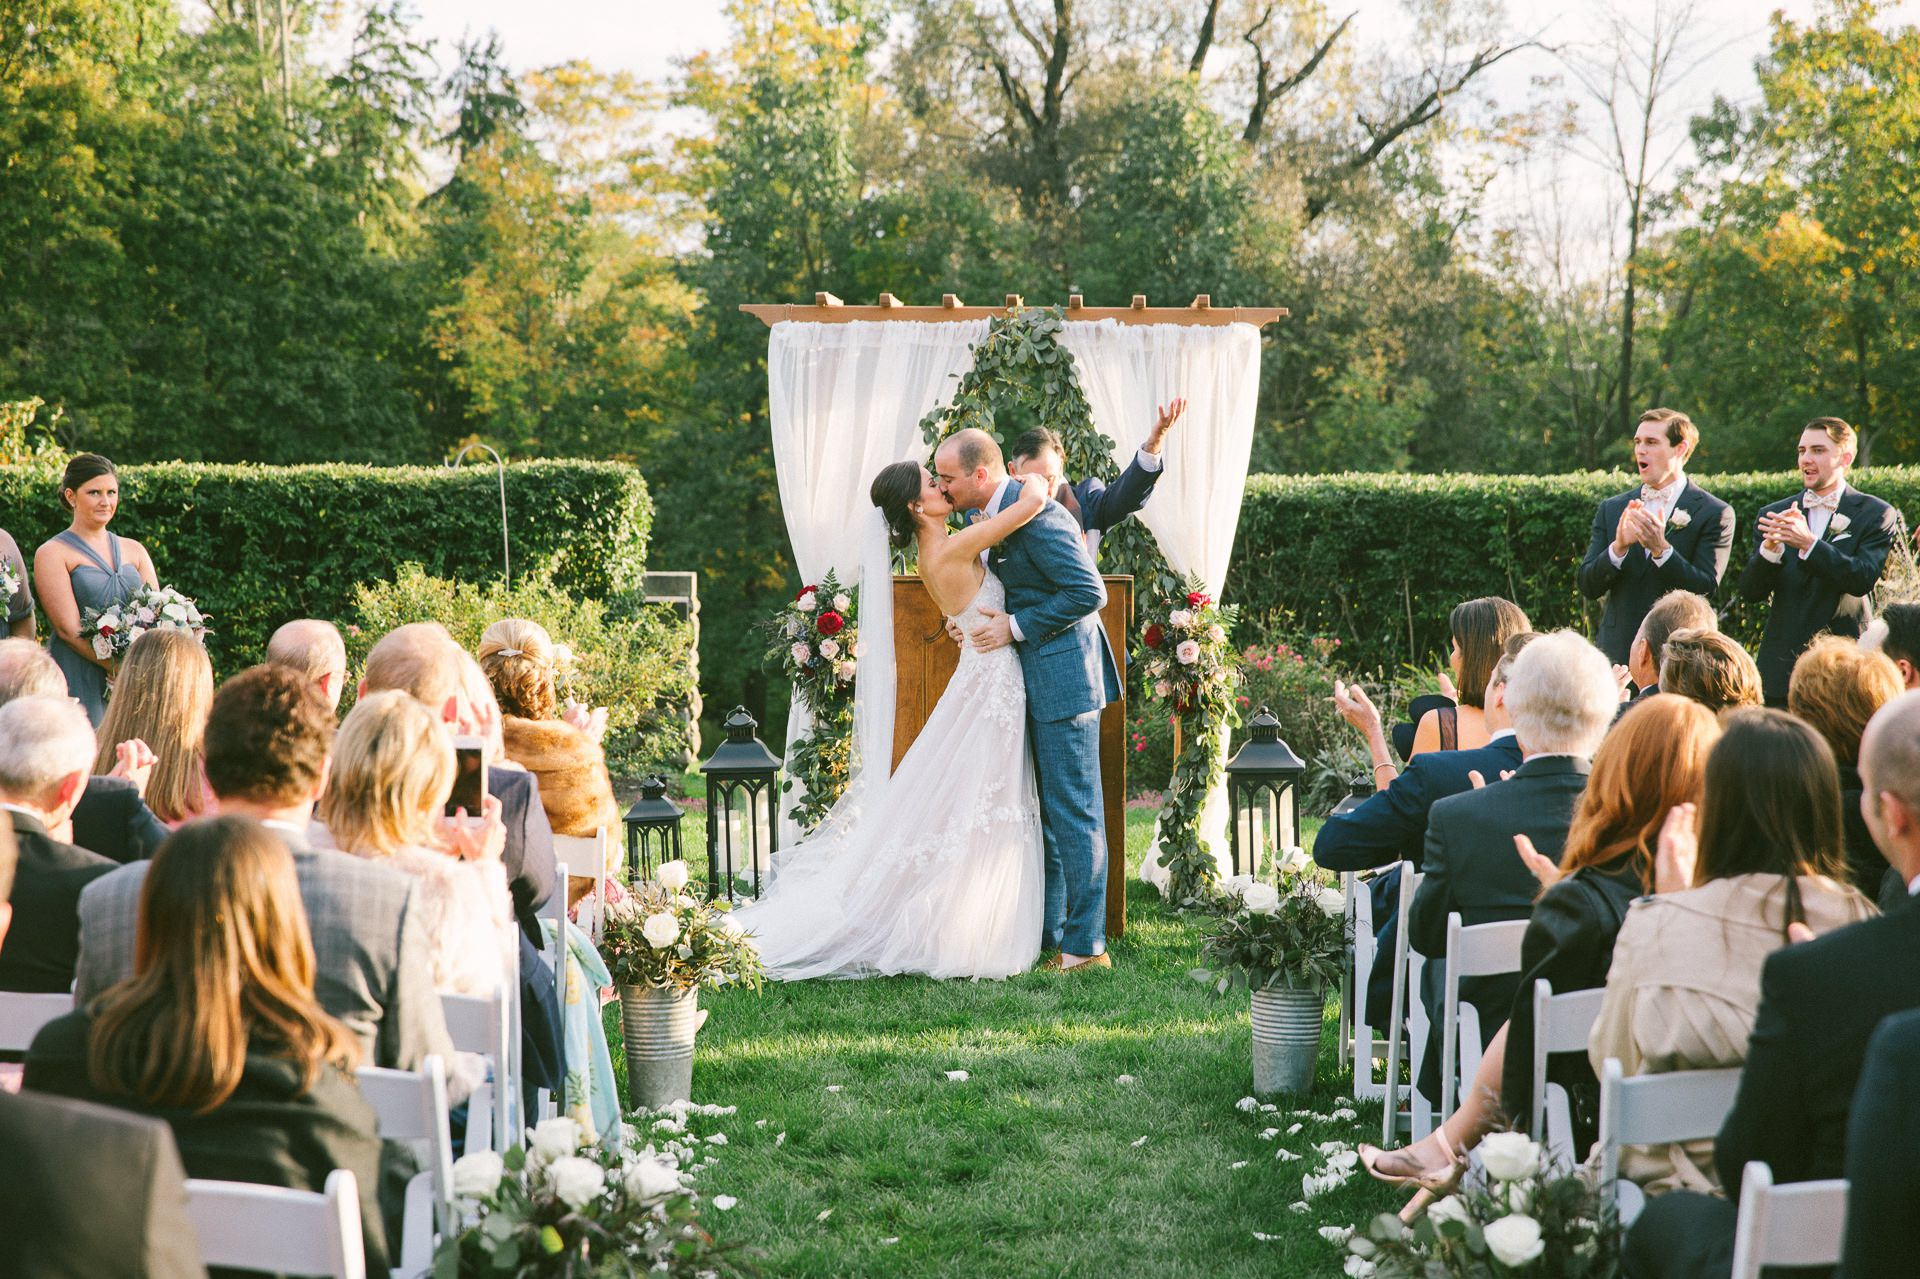 Wedding at Kirtland Country Club in Willoughby 3 15.jpg